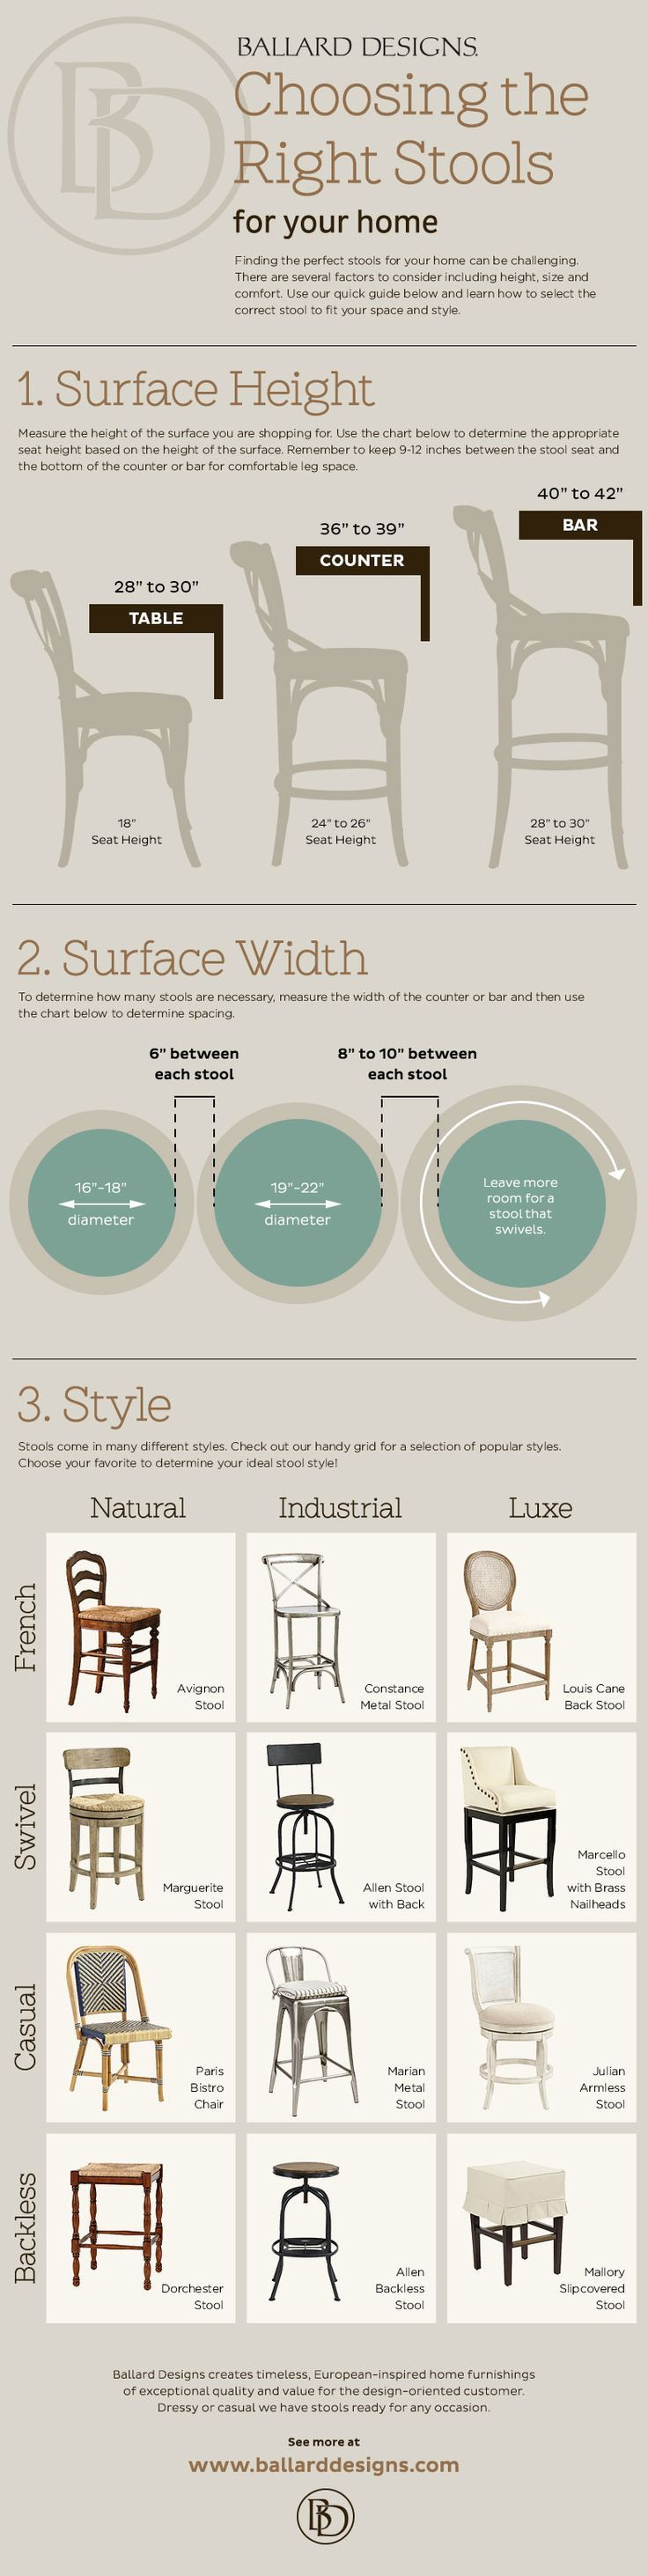 How to Choose the Right Stools for Your Kitchen - http://centophobe.com/how-to-choose-the-right-stools-for-your-kitchen/